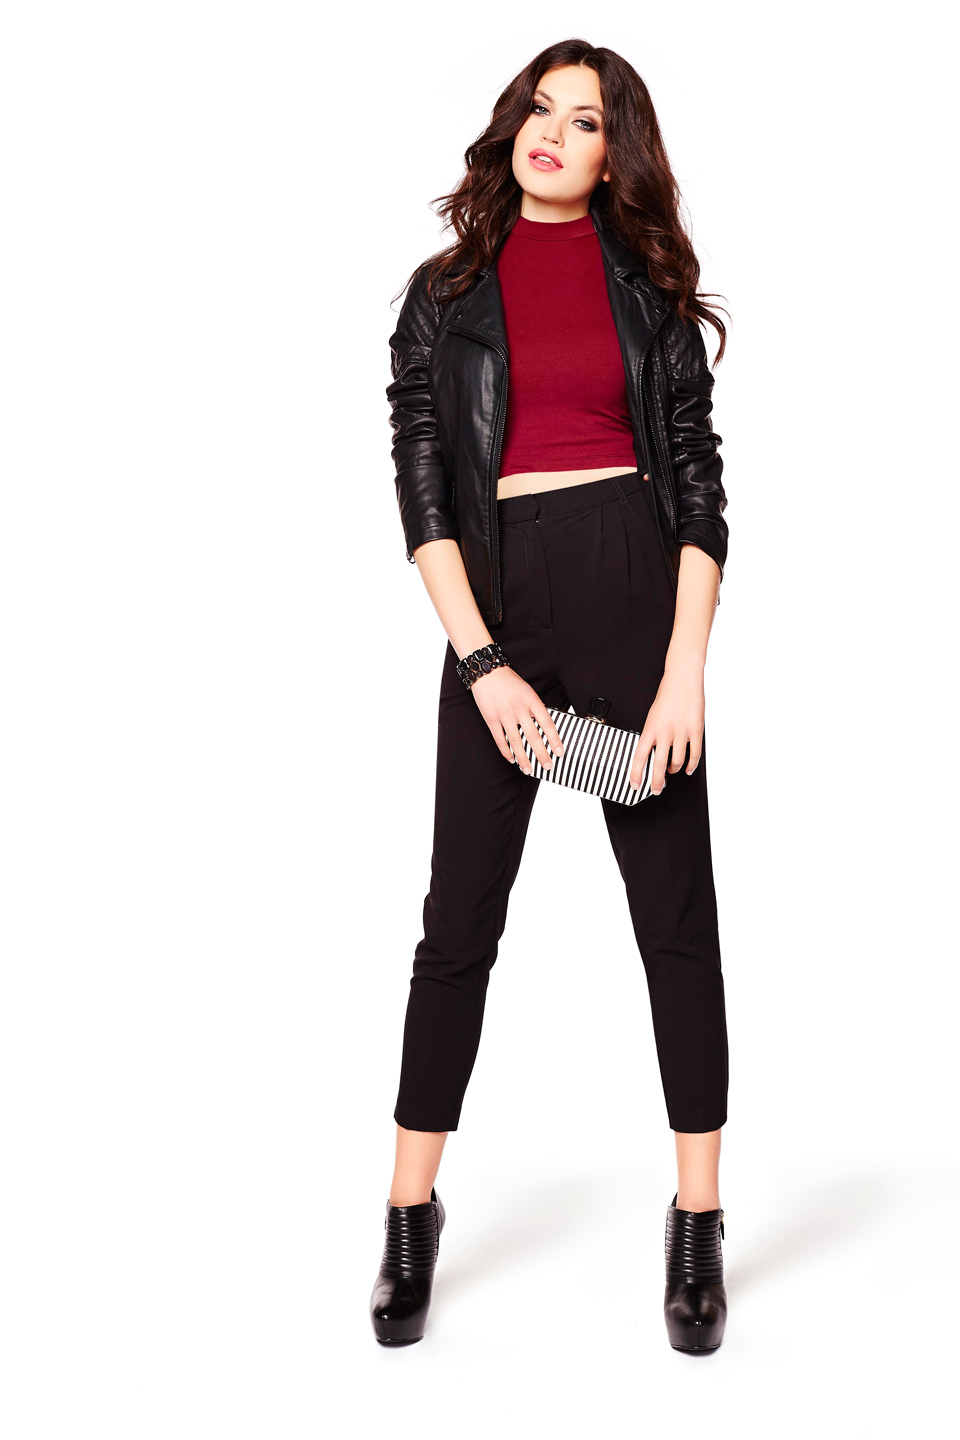 outfit6-960px-wide.jpg